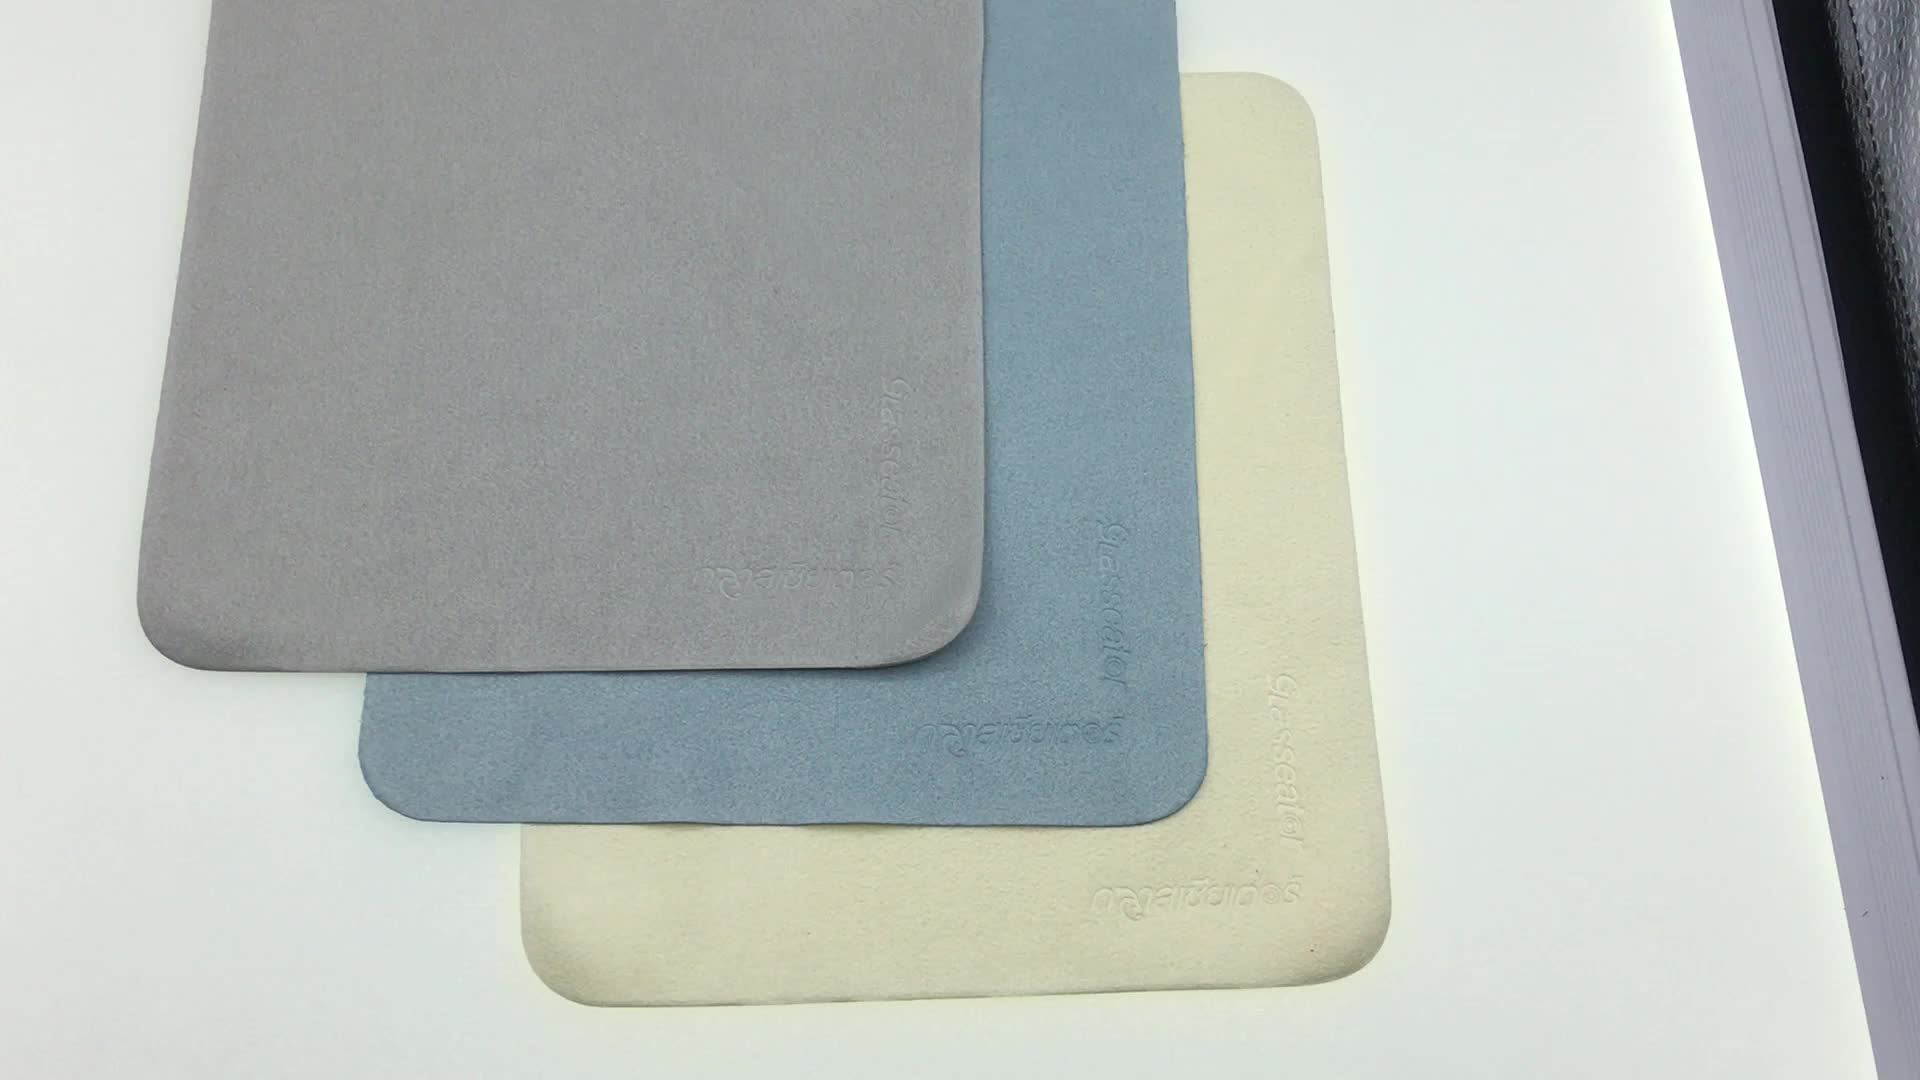 MIcrofiber suede chamois cleaning cloth in roll